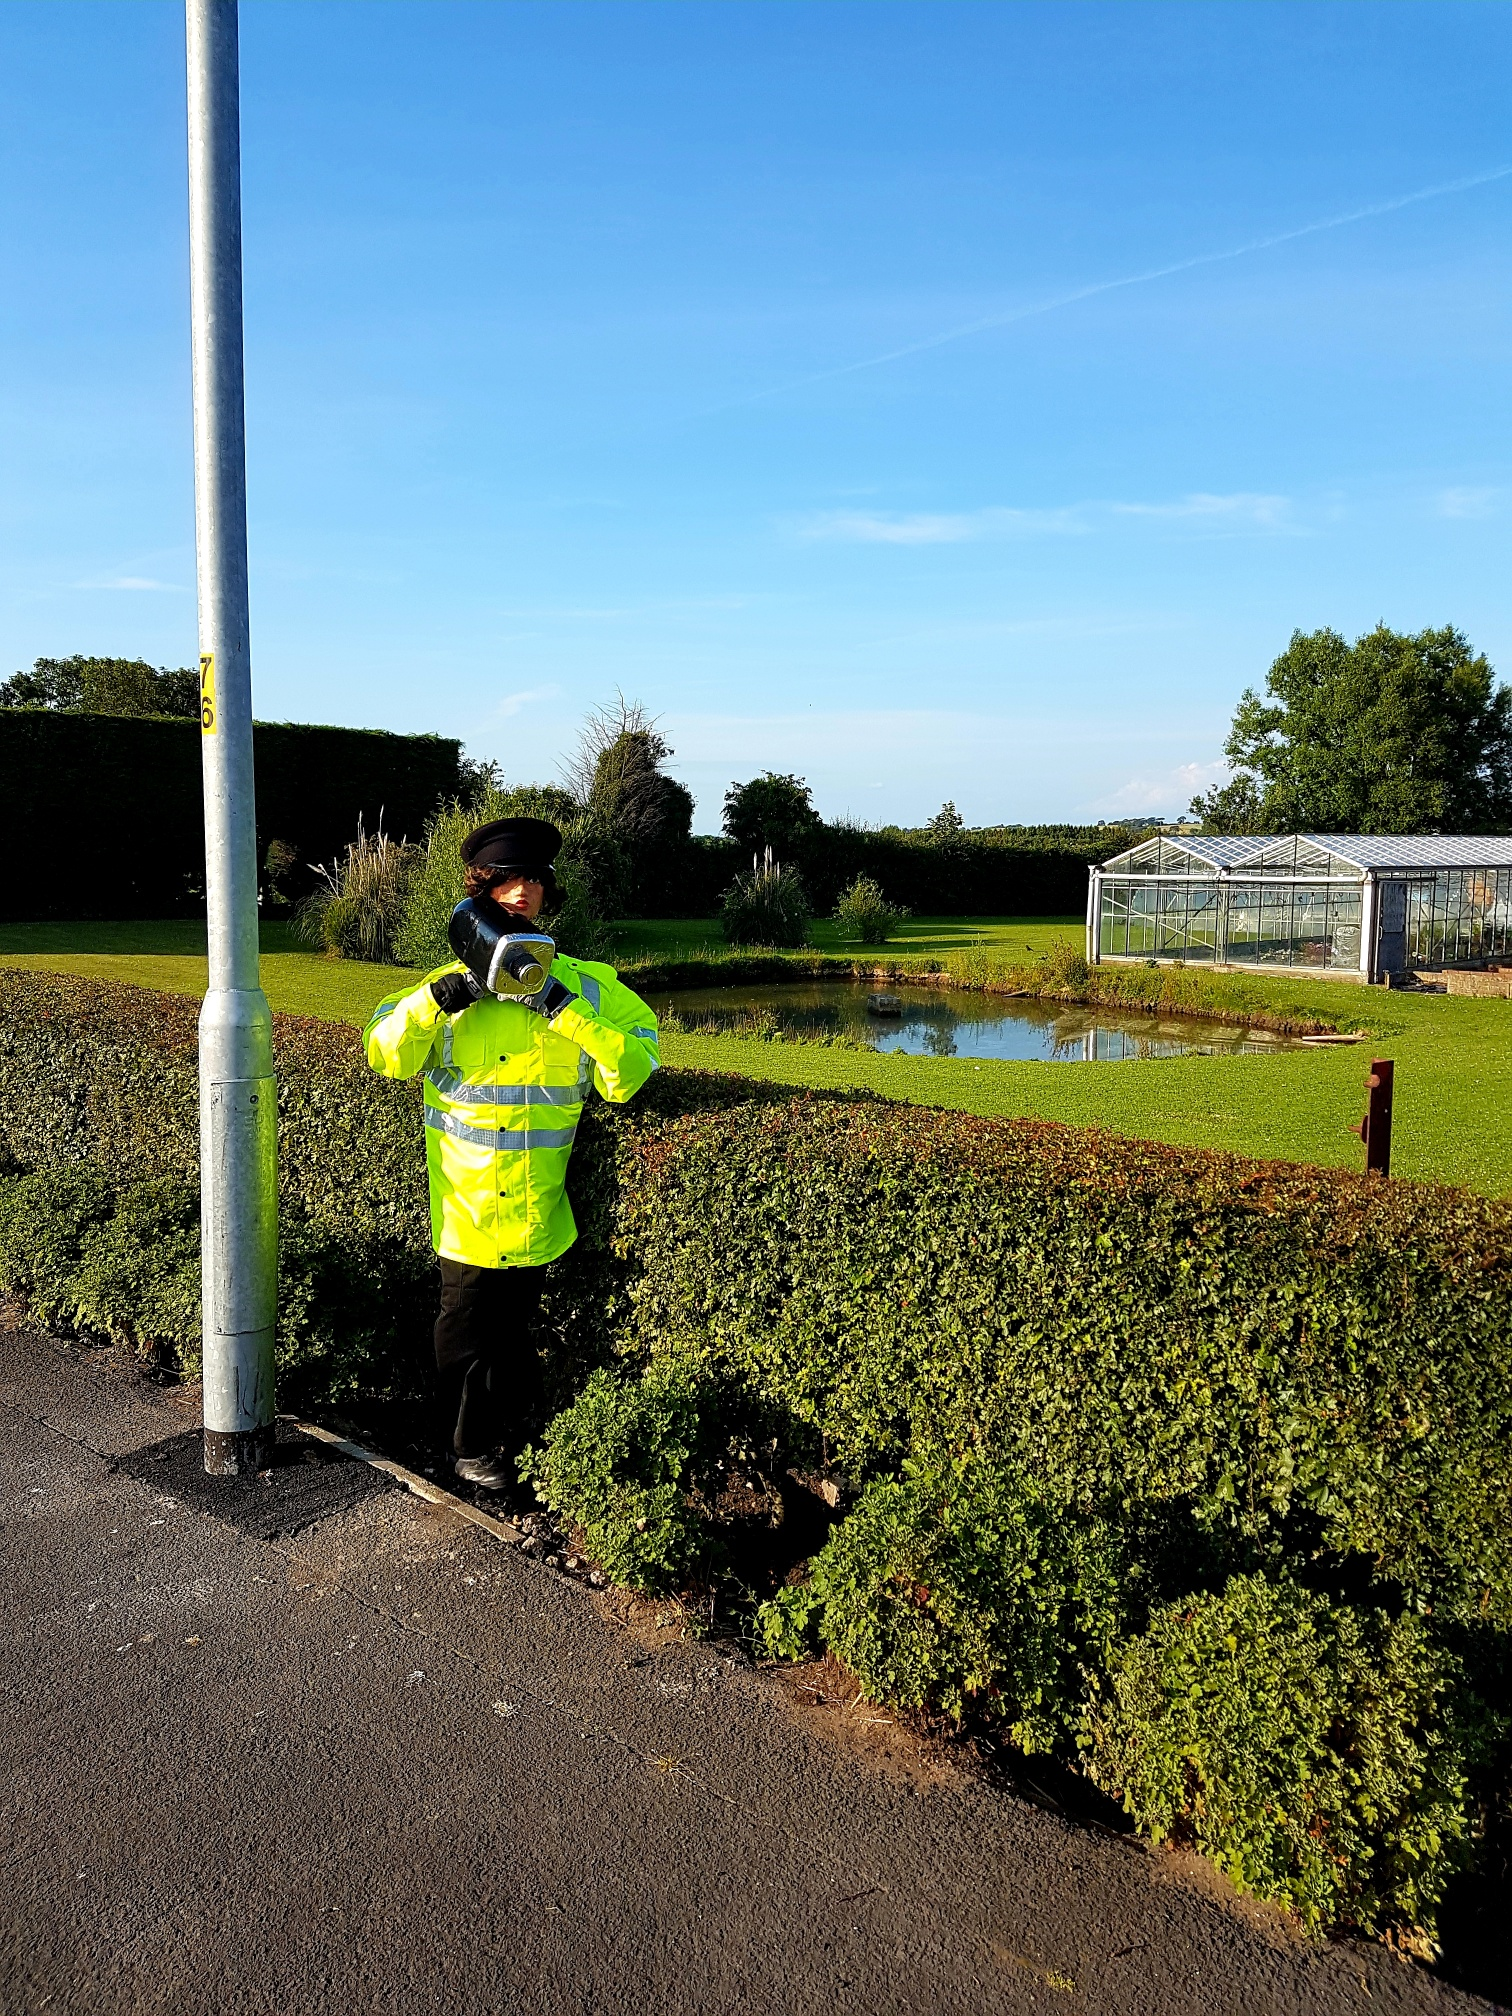 STONE THE CROWS! SPEED GUN 'OFFICER' SLOWS THE TRAFFIC